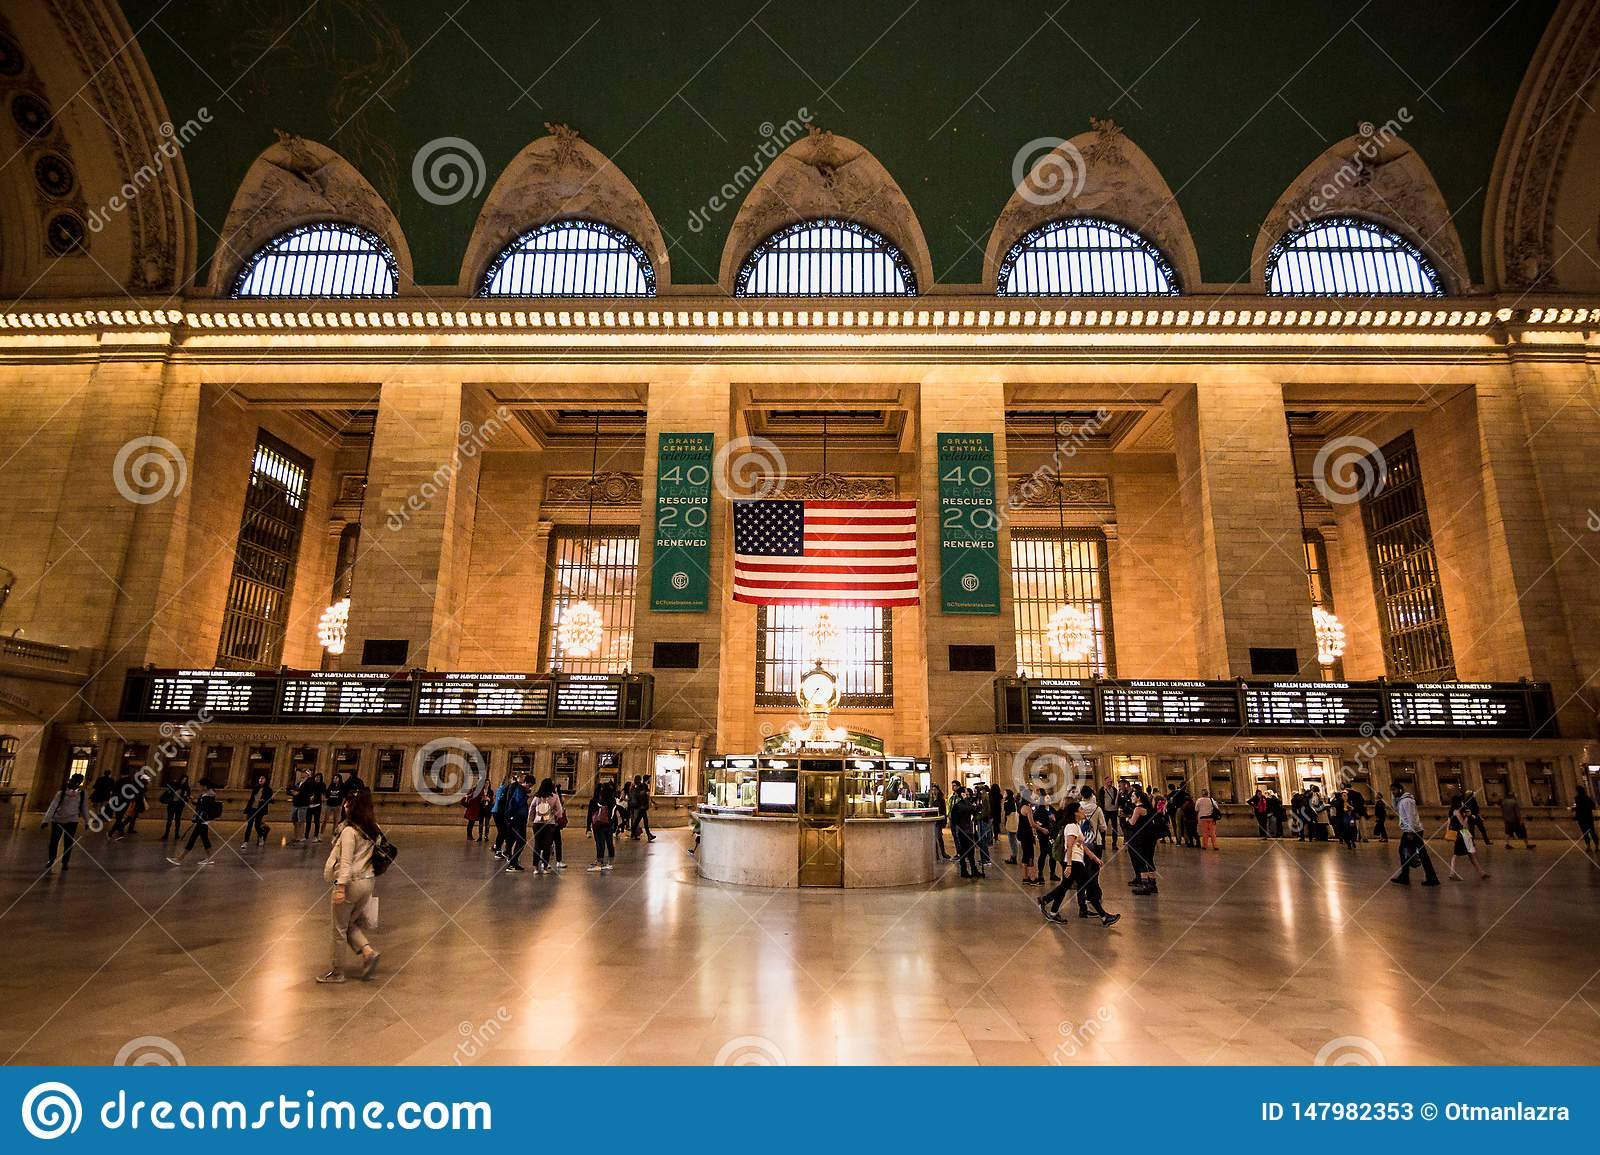 Commuters and tourists in the grand central station in New York